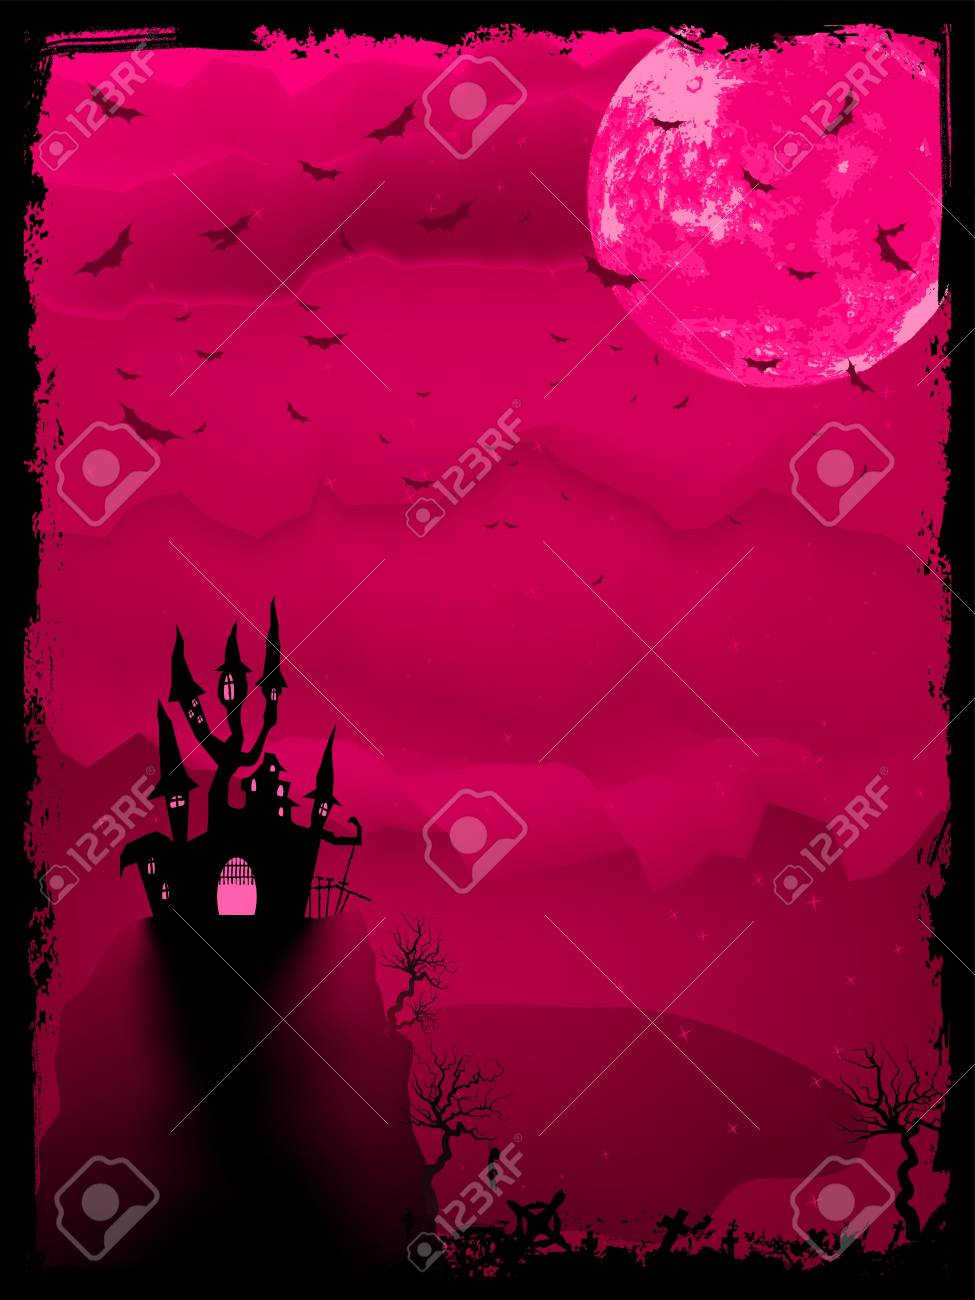 Scary halloween vector with magical abbey  EPS 8 vector file included Stock Vector - 13740202